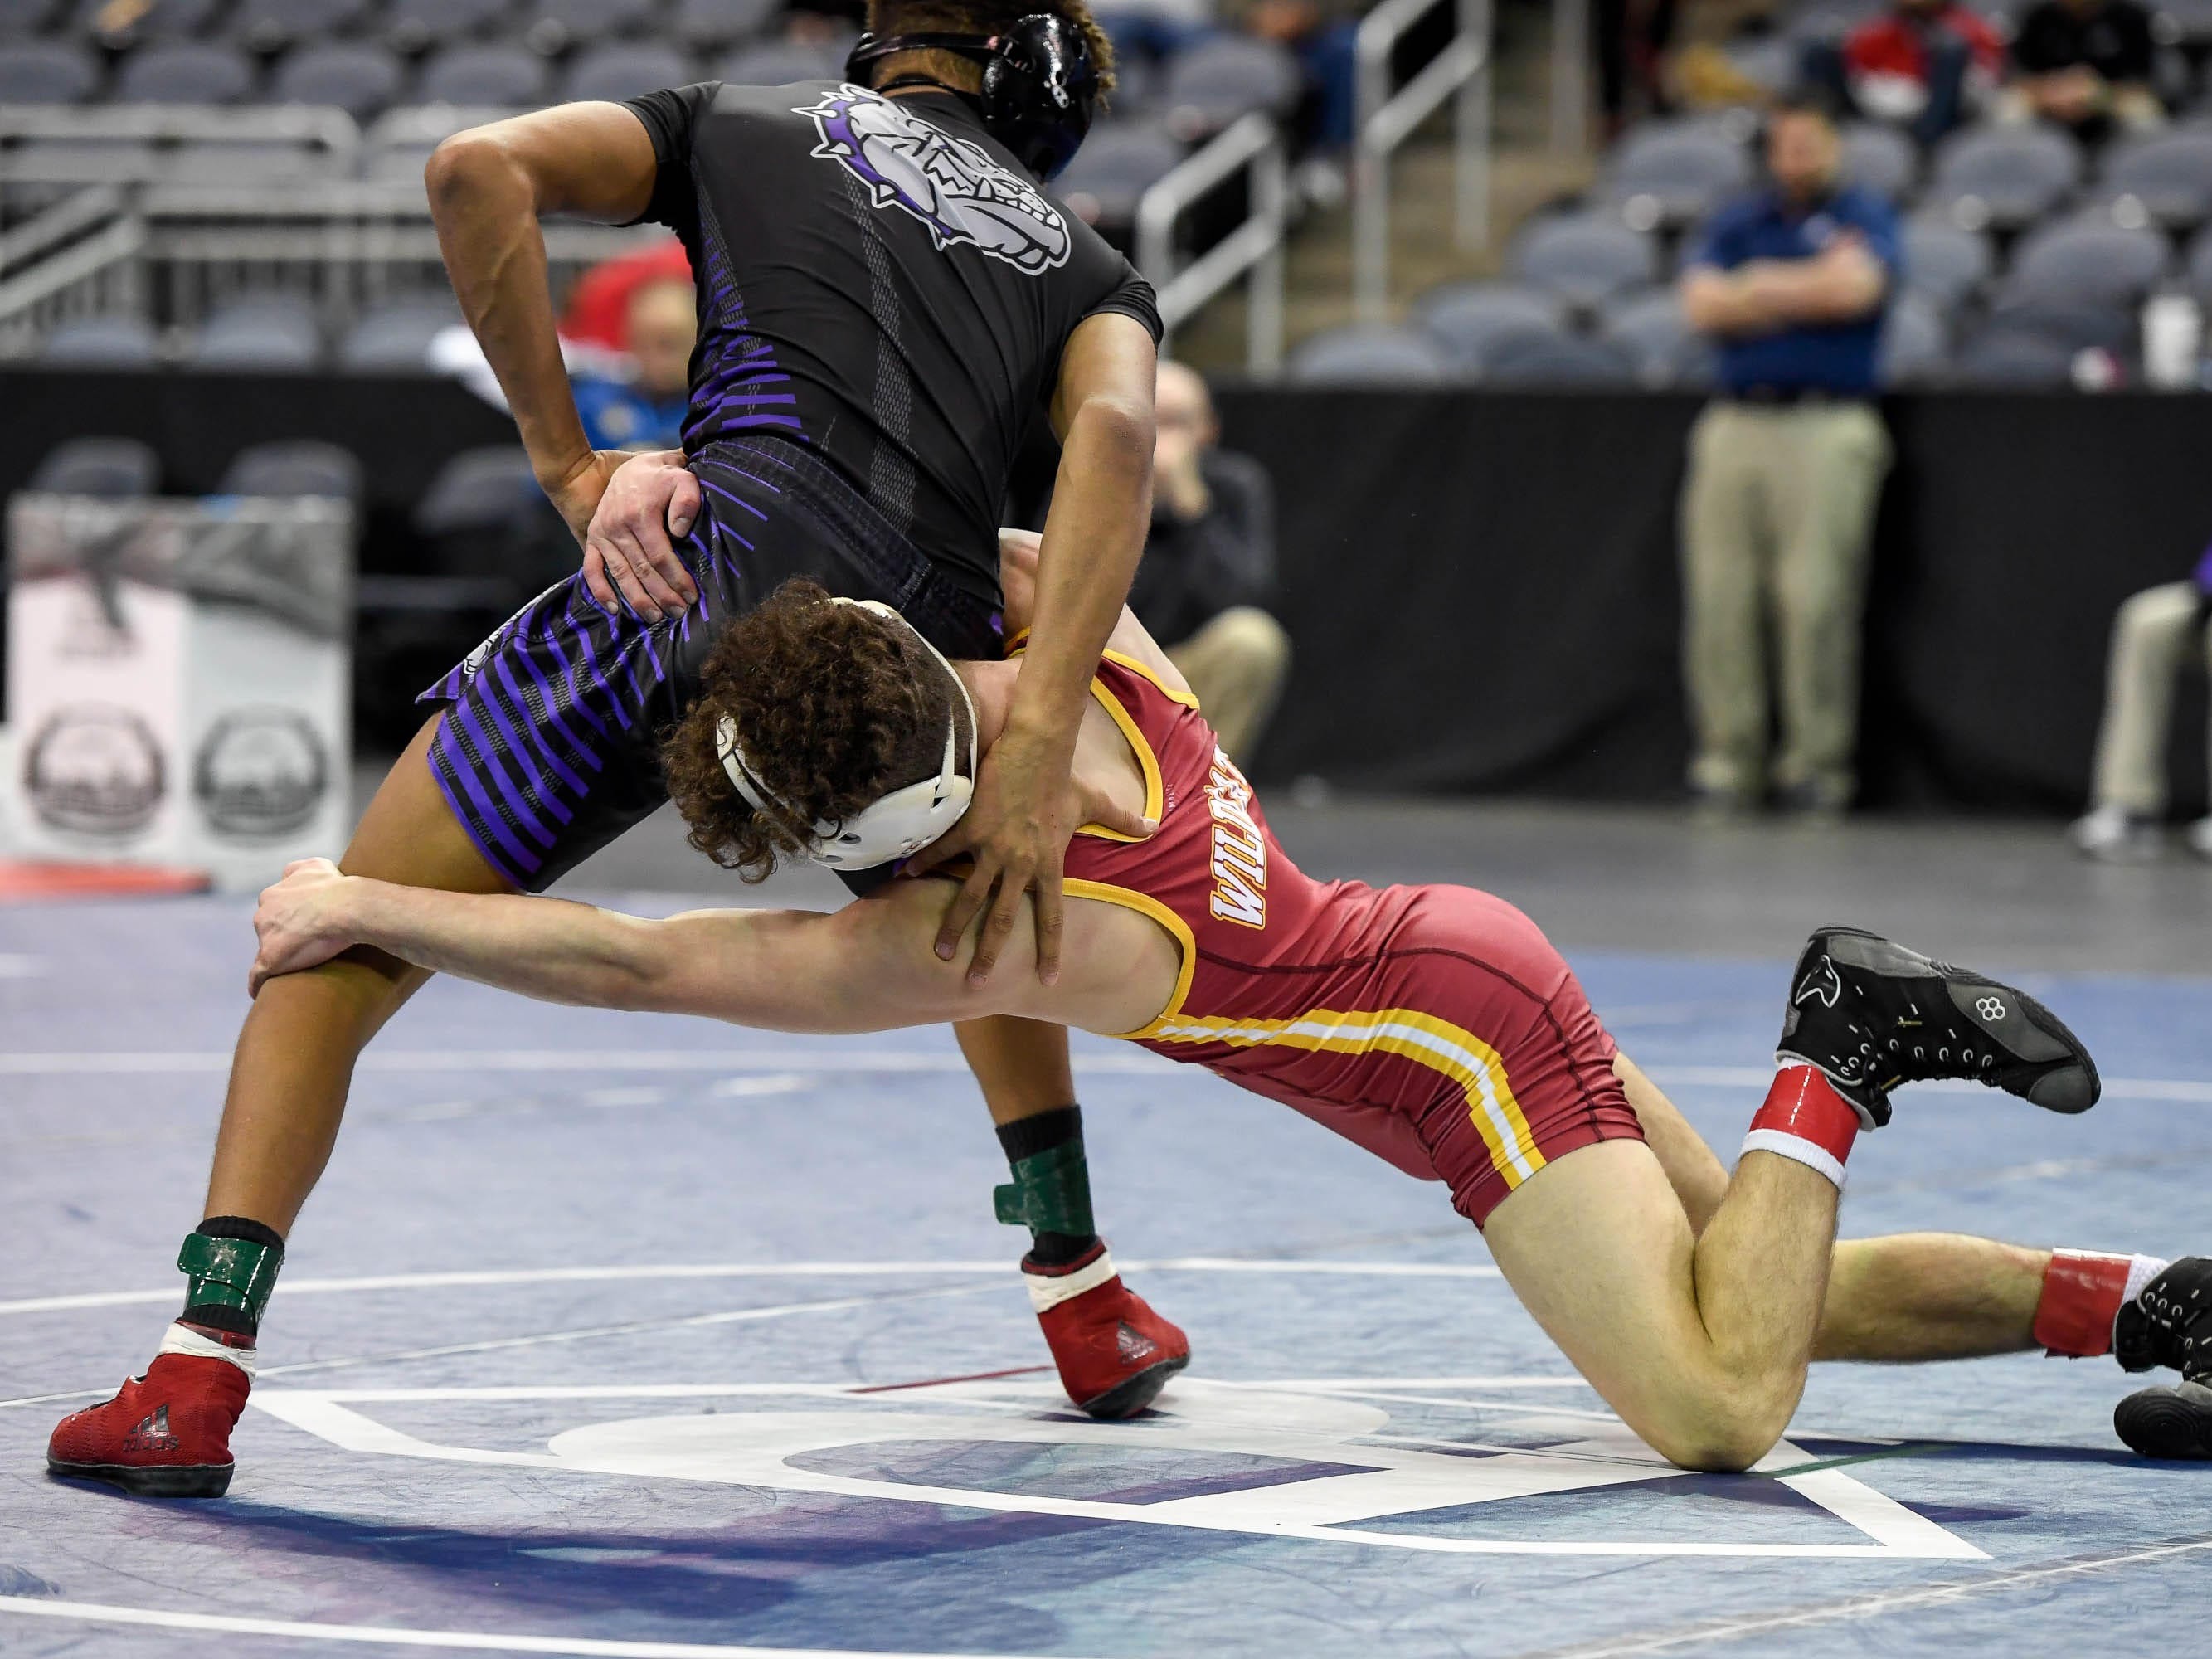 Cole Ross, Evansville Mater Dei, wrestles K.T. Nelson, Brownsburg, in the 113 weight class at the Indiana High School Athletic Association Semi-State Wrestling Tournament held at the Ford Center Saturday, February 9, 2019.